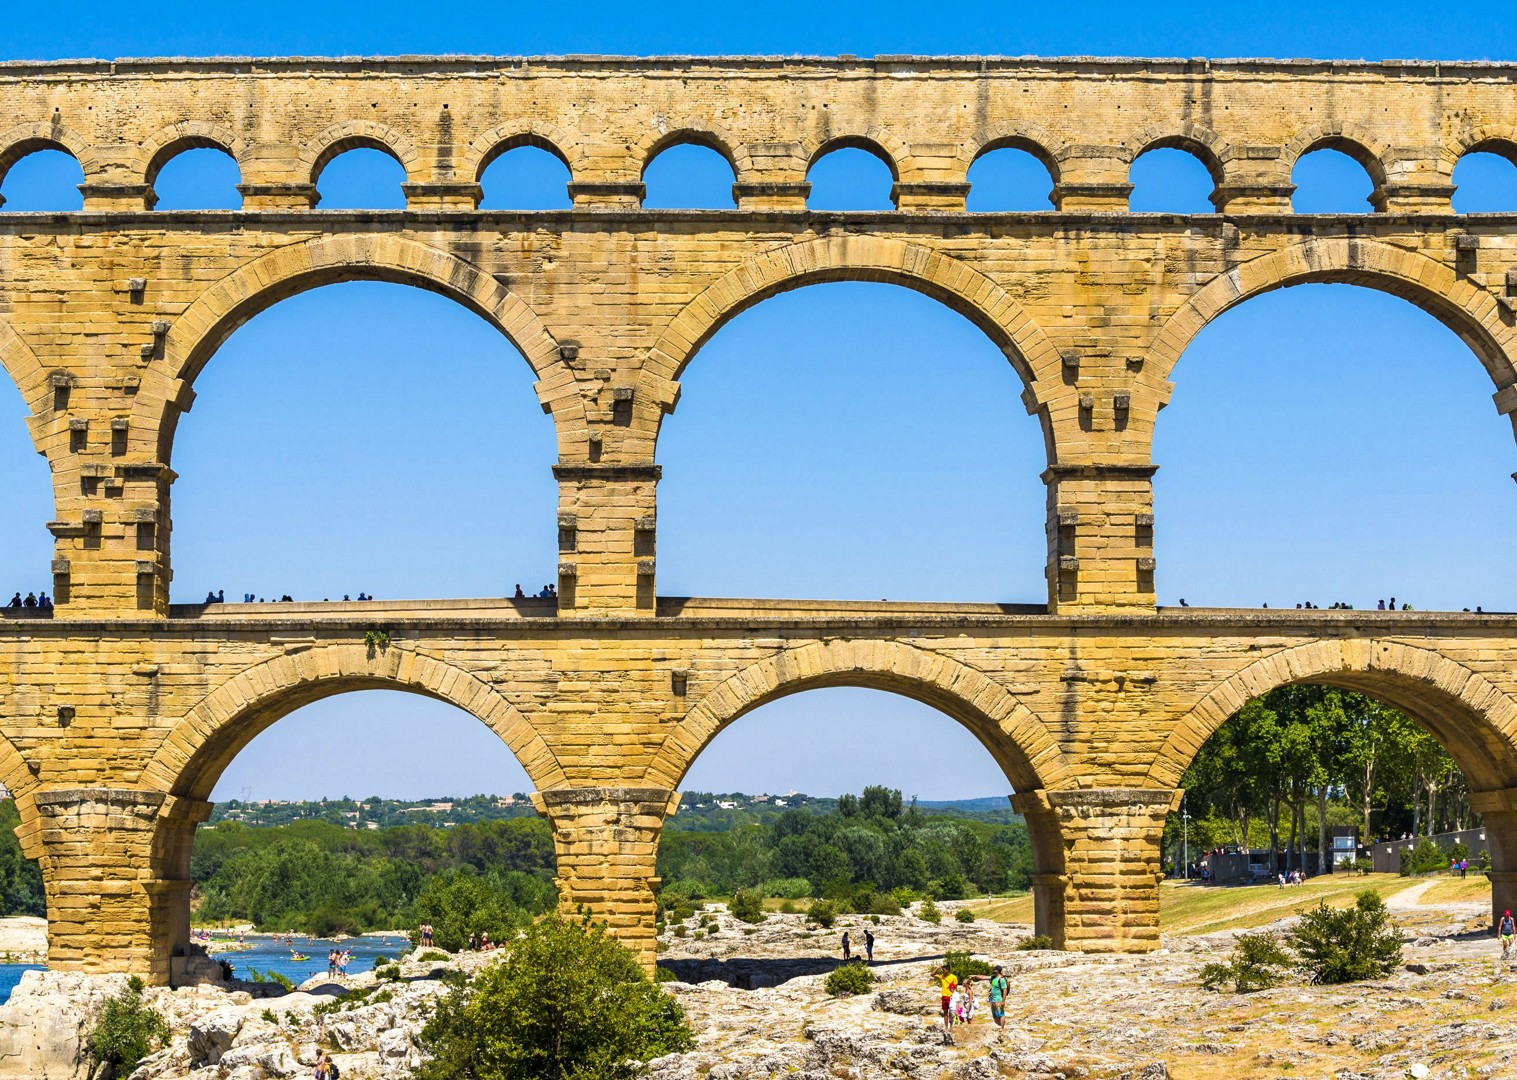 vers-pont-du-gard-france-cycling-holiday-saddle-skedaddle-cultural-fun.jpg - France - Provence - Aigues-Mortes to Avignon - Bike and Barge Holiday - Leisure Cycling